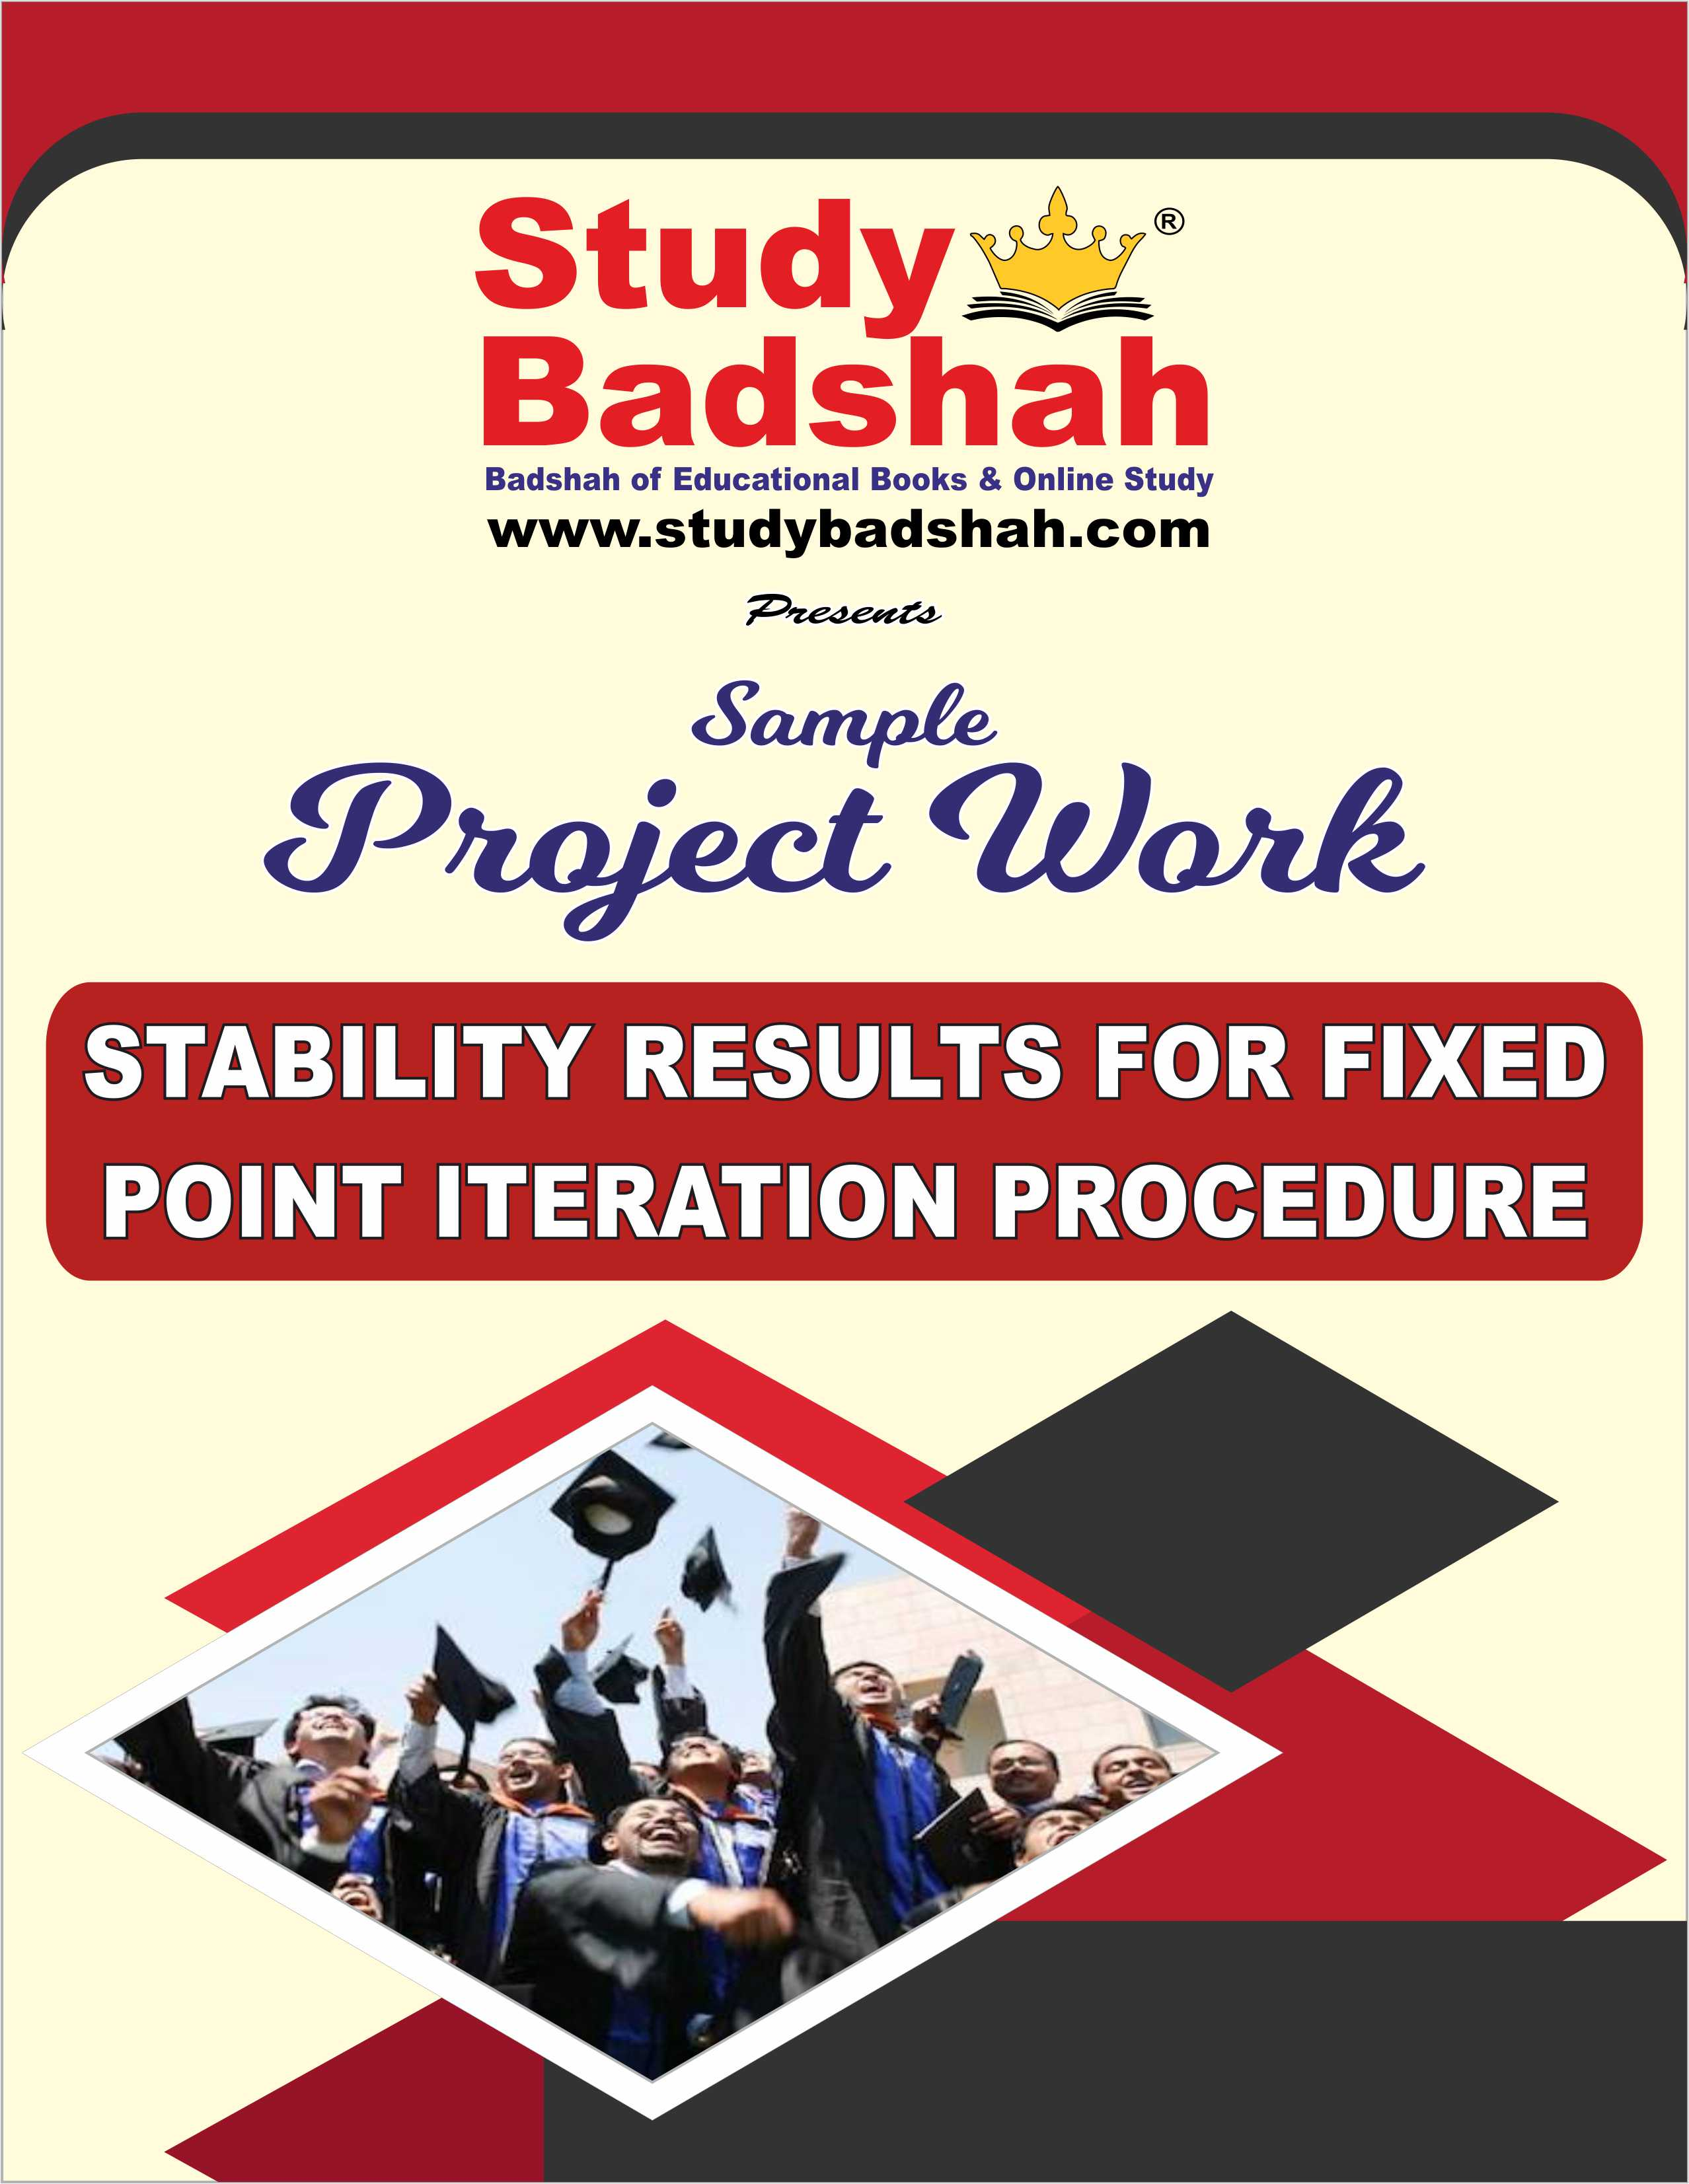 STABILITY RESULTS FOR FIXED POINT ITERATION PROCEDURE